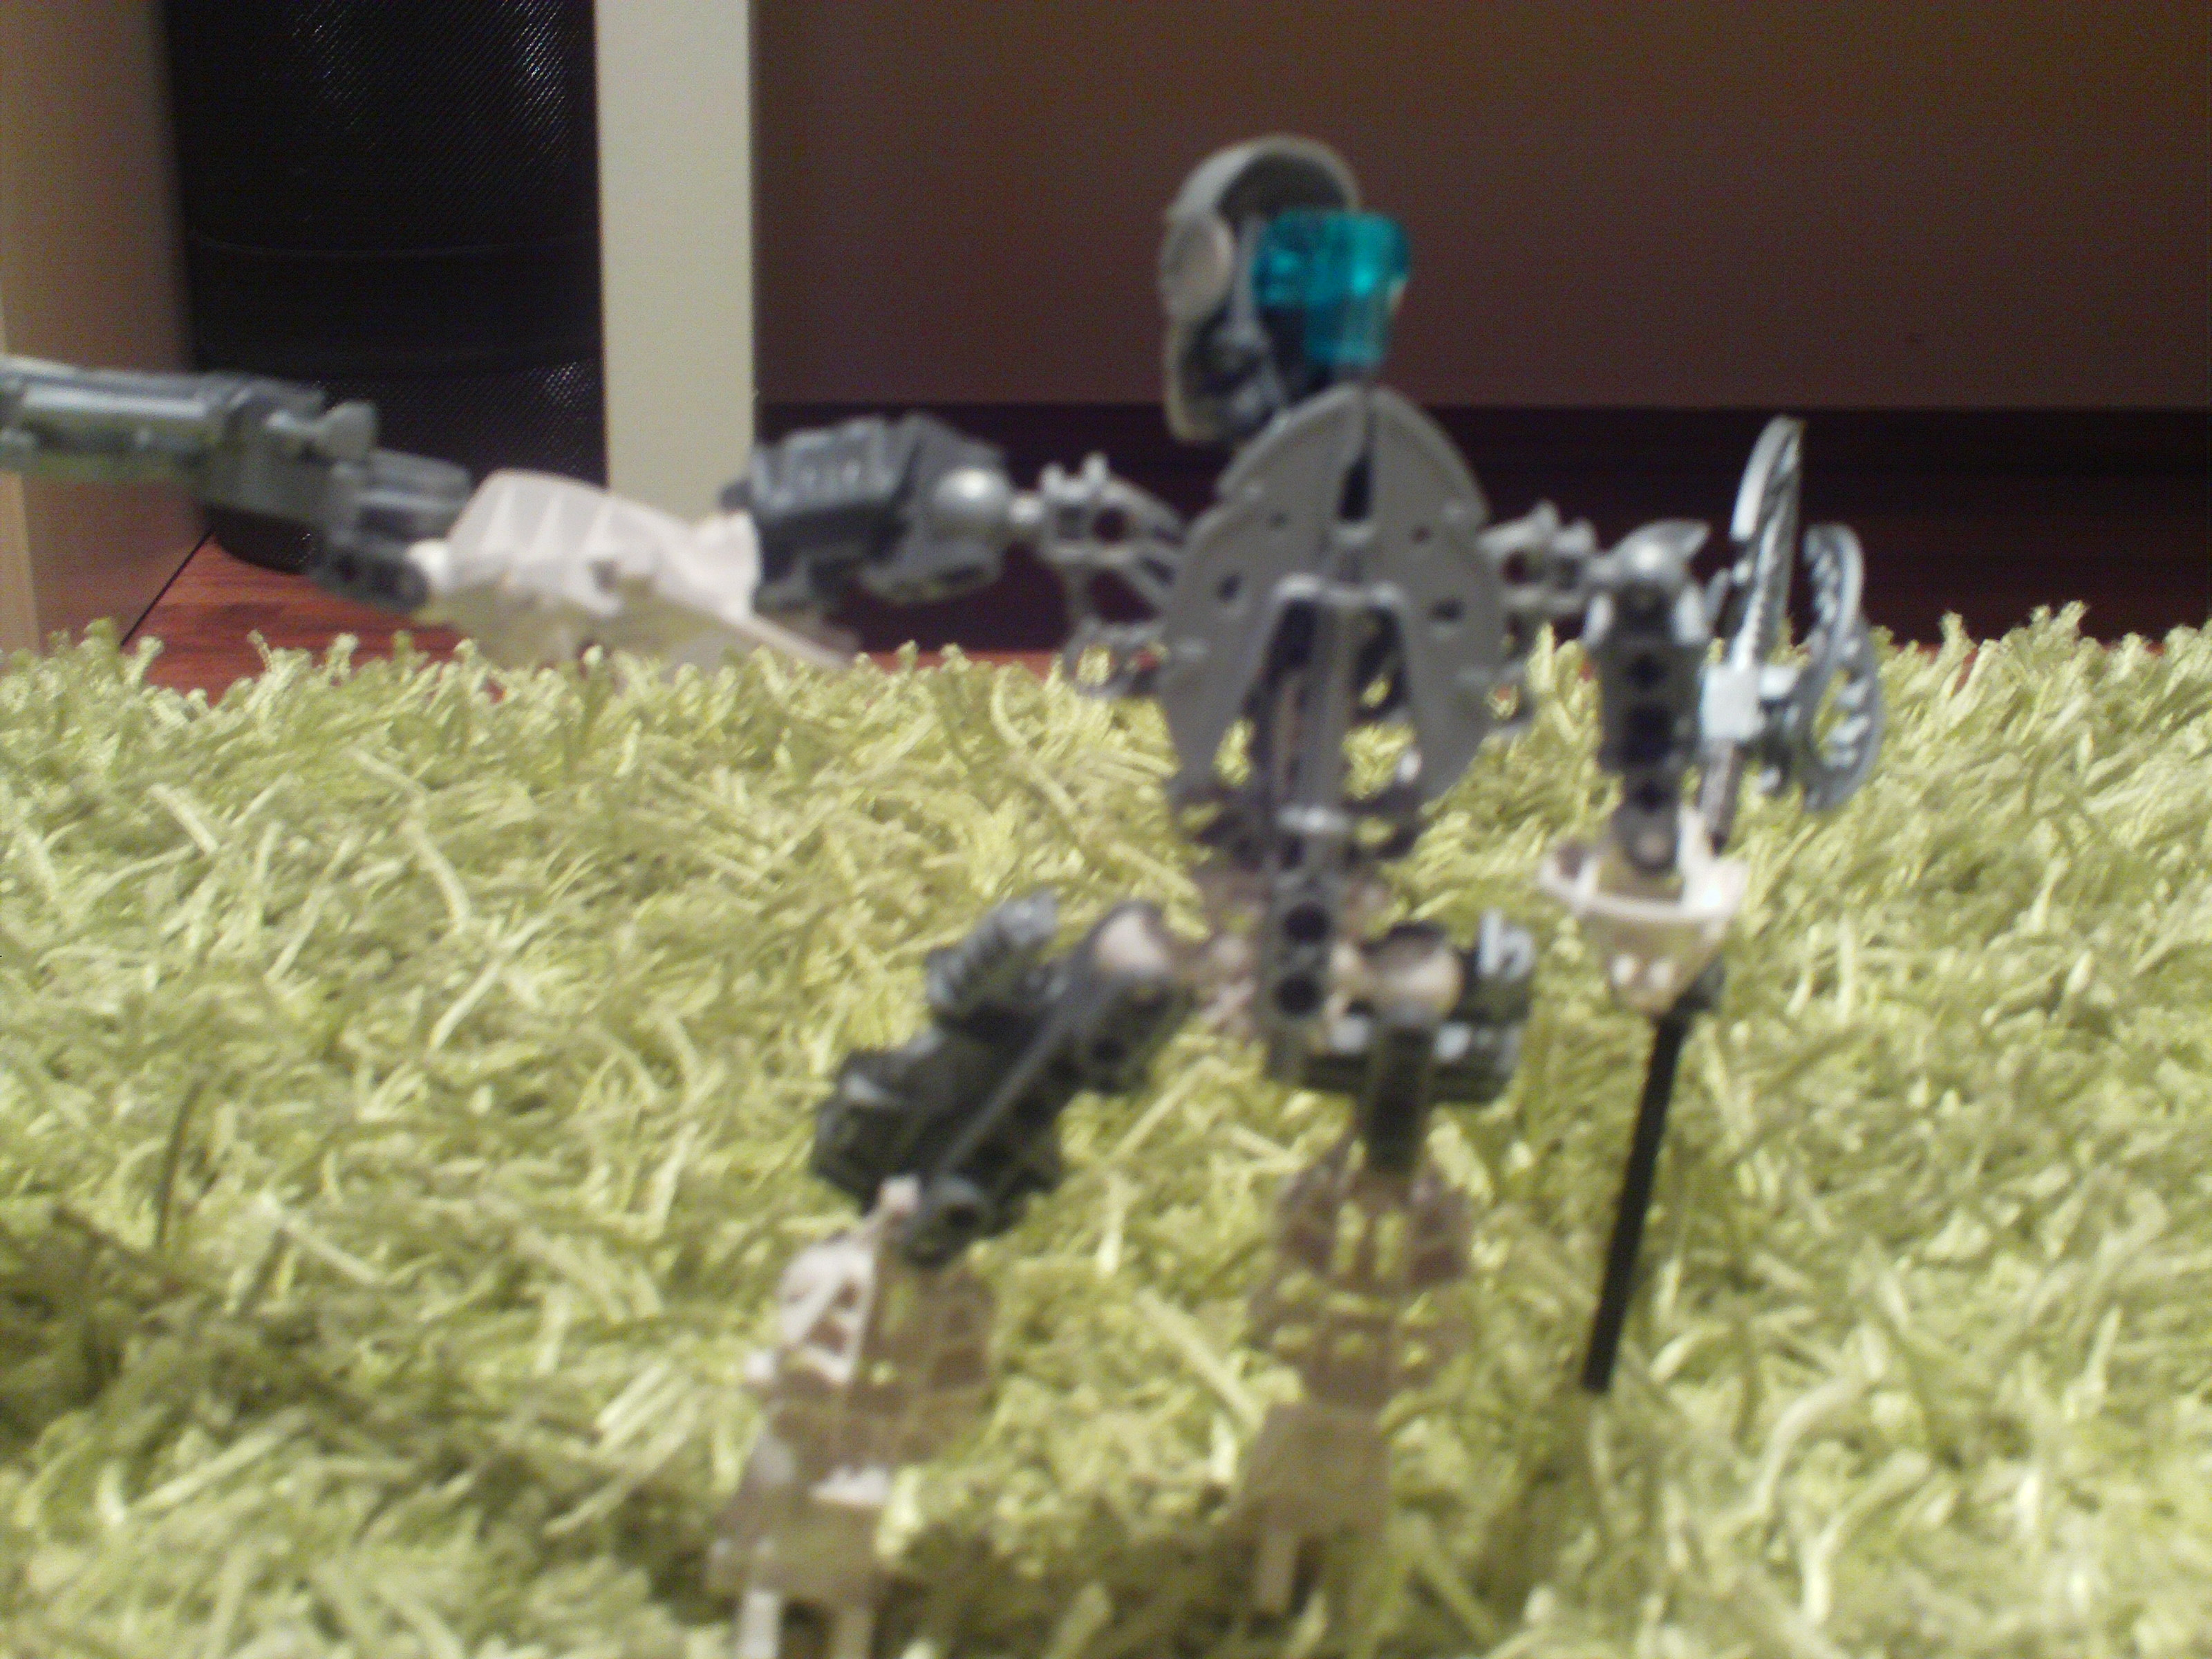 london_und_bionicle_mocs_390.jpg